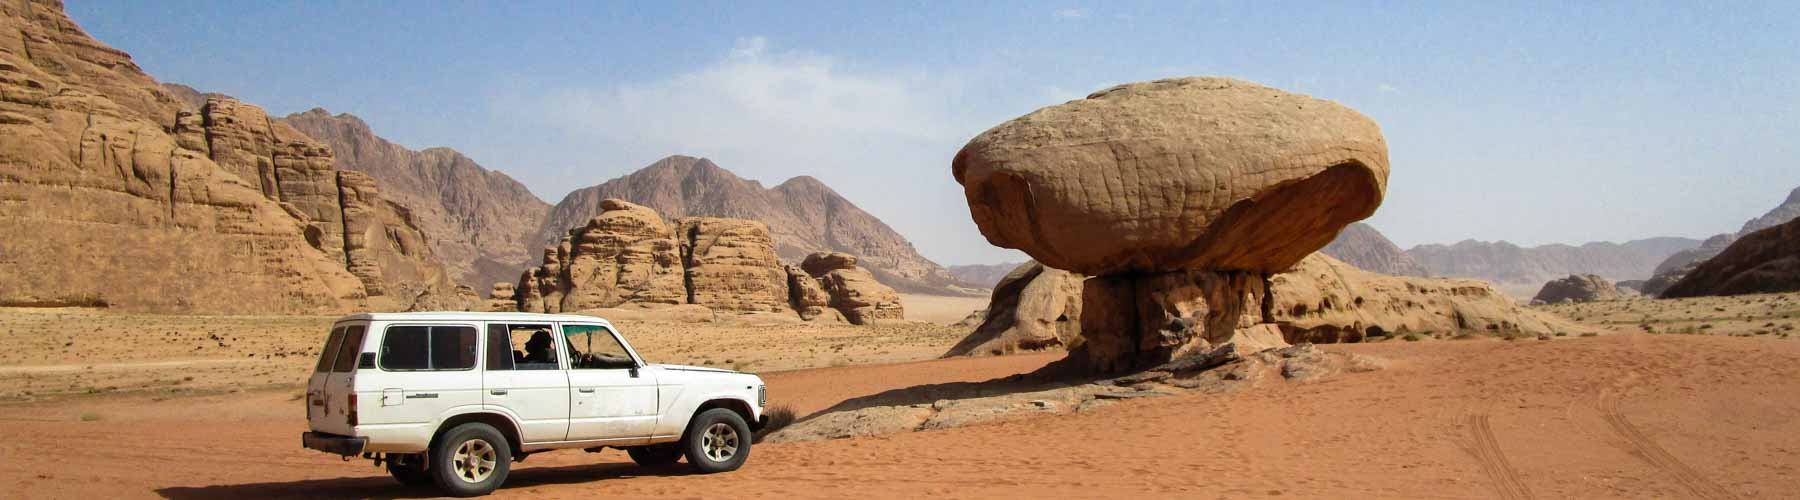 Visiting Mushroom rock during a jeep tour